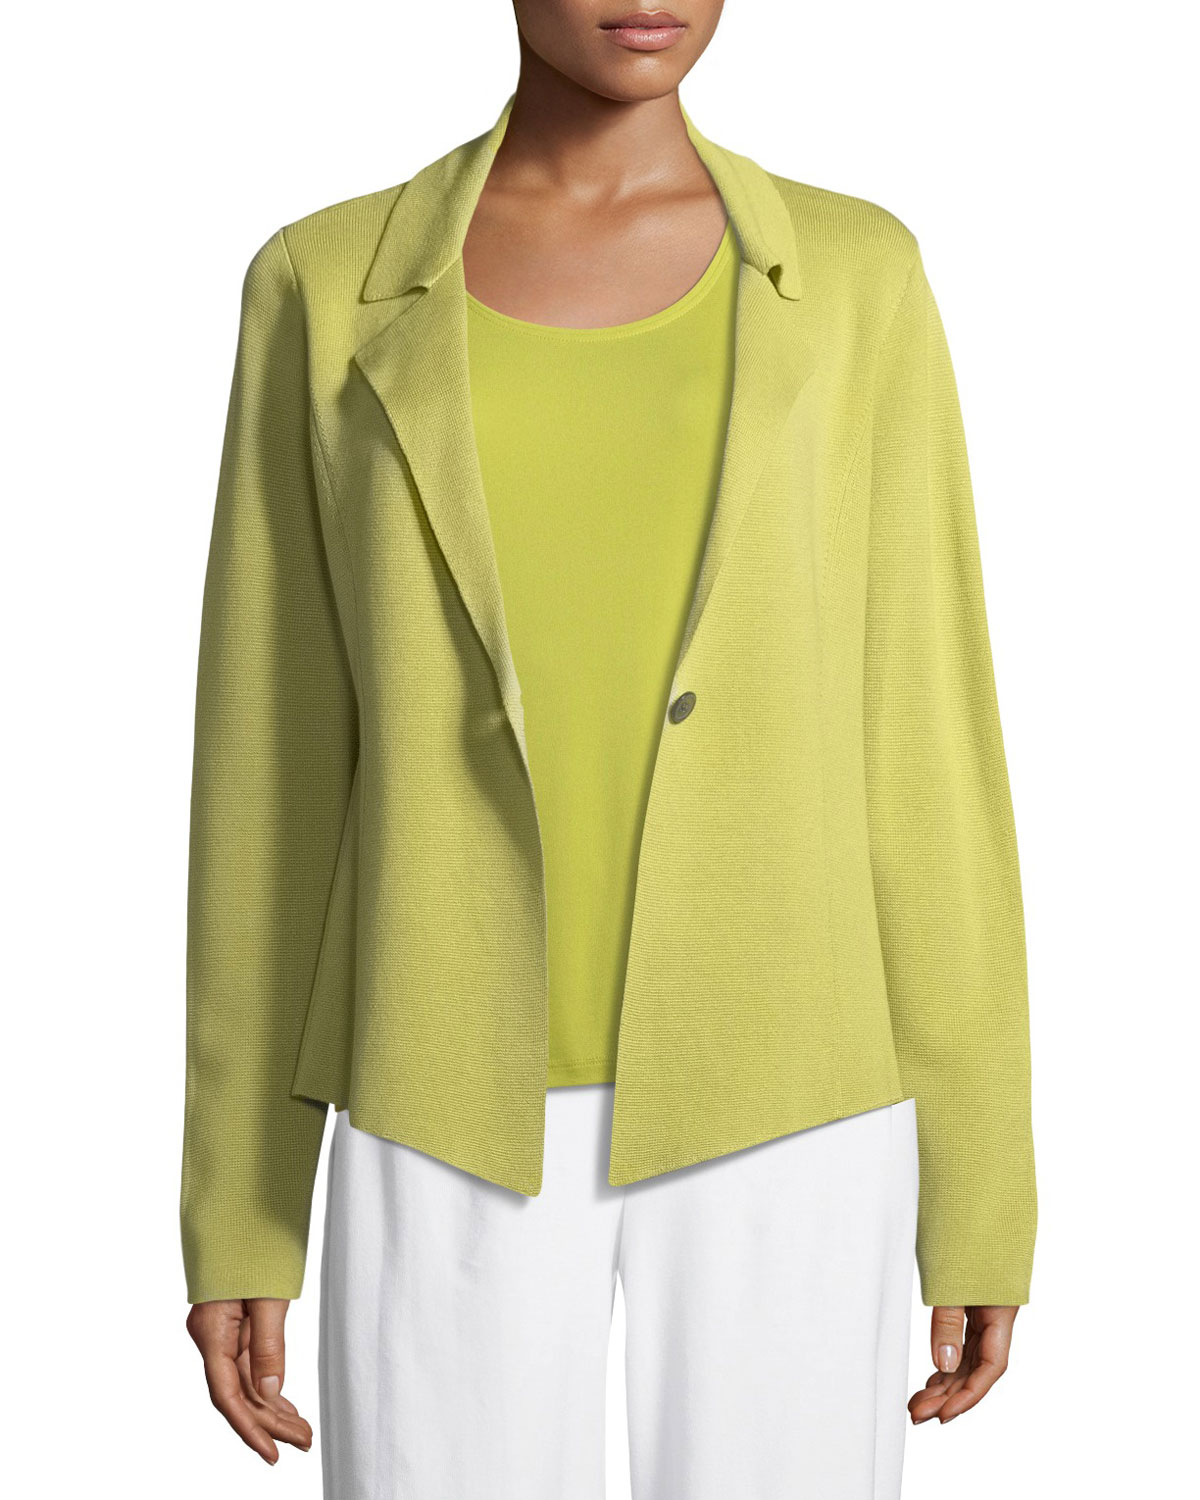 Silk-Blend Interlock Short Jacket, Plus Size